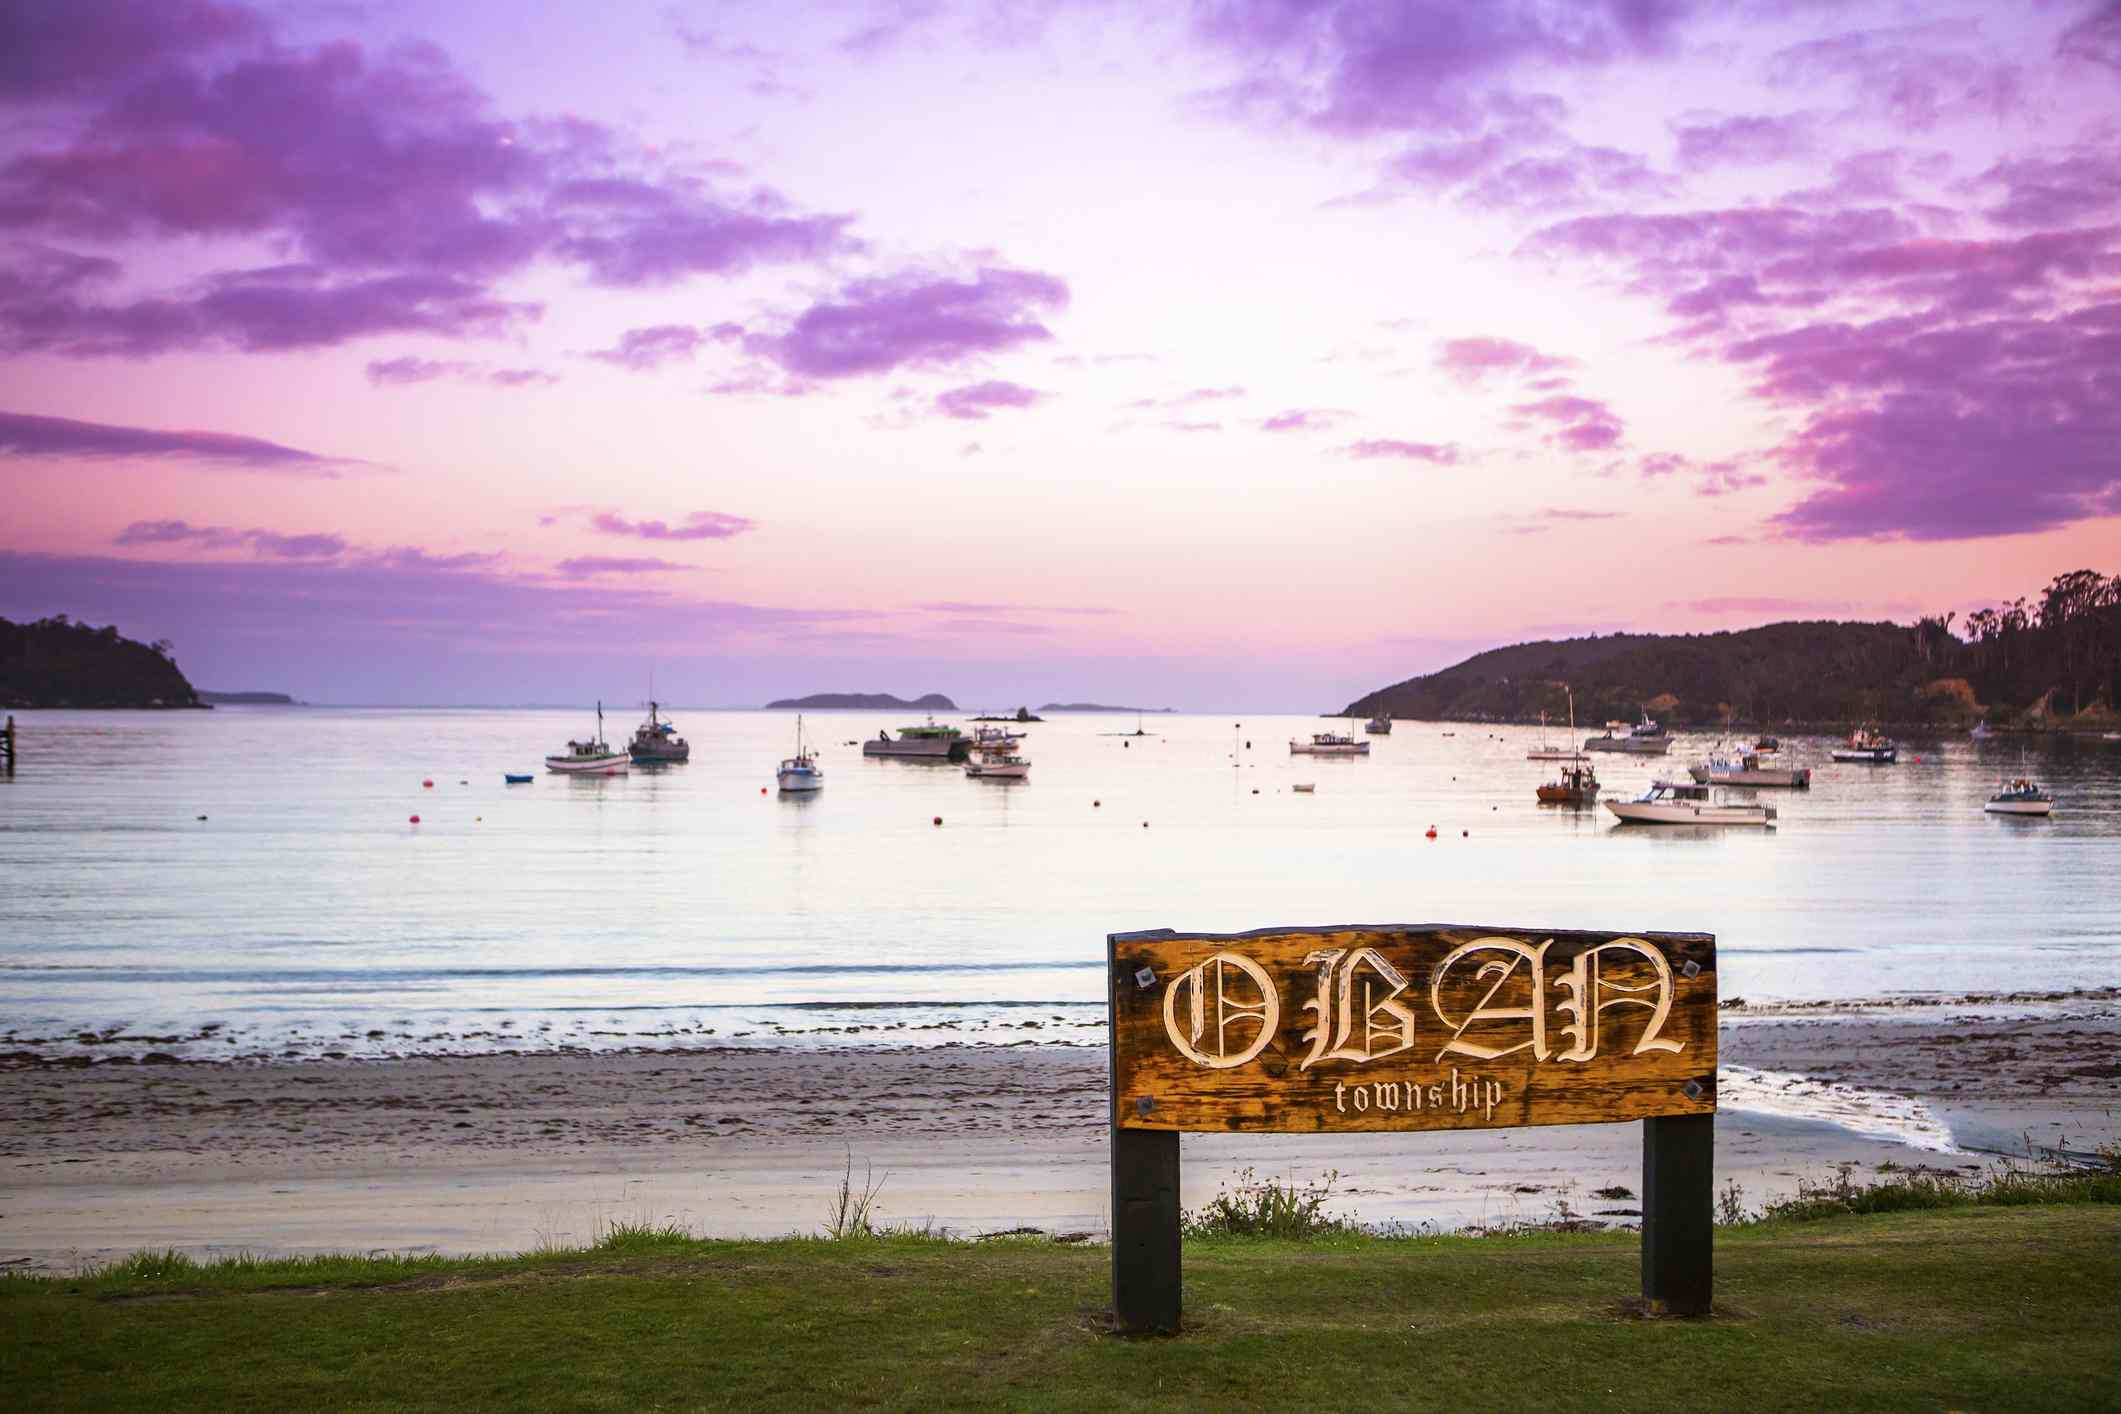 boats in the water with a pink sky overhead. In the foreground there is a road and an aged sign that says OBAN township